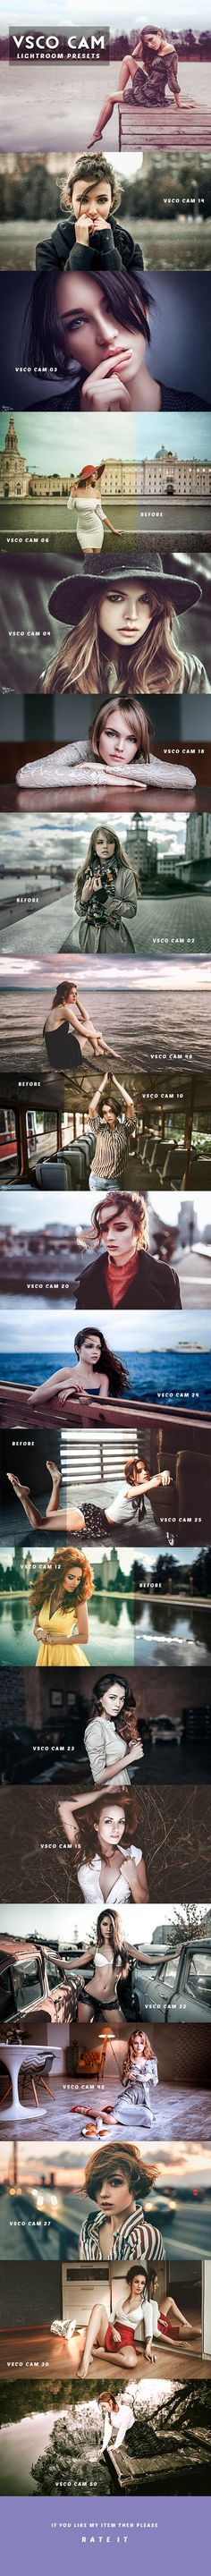 Vsco Cam Lightroom Presets - Lightroom Presets Add-ons